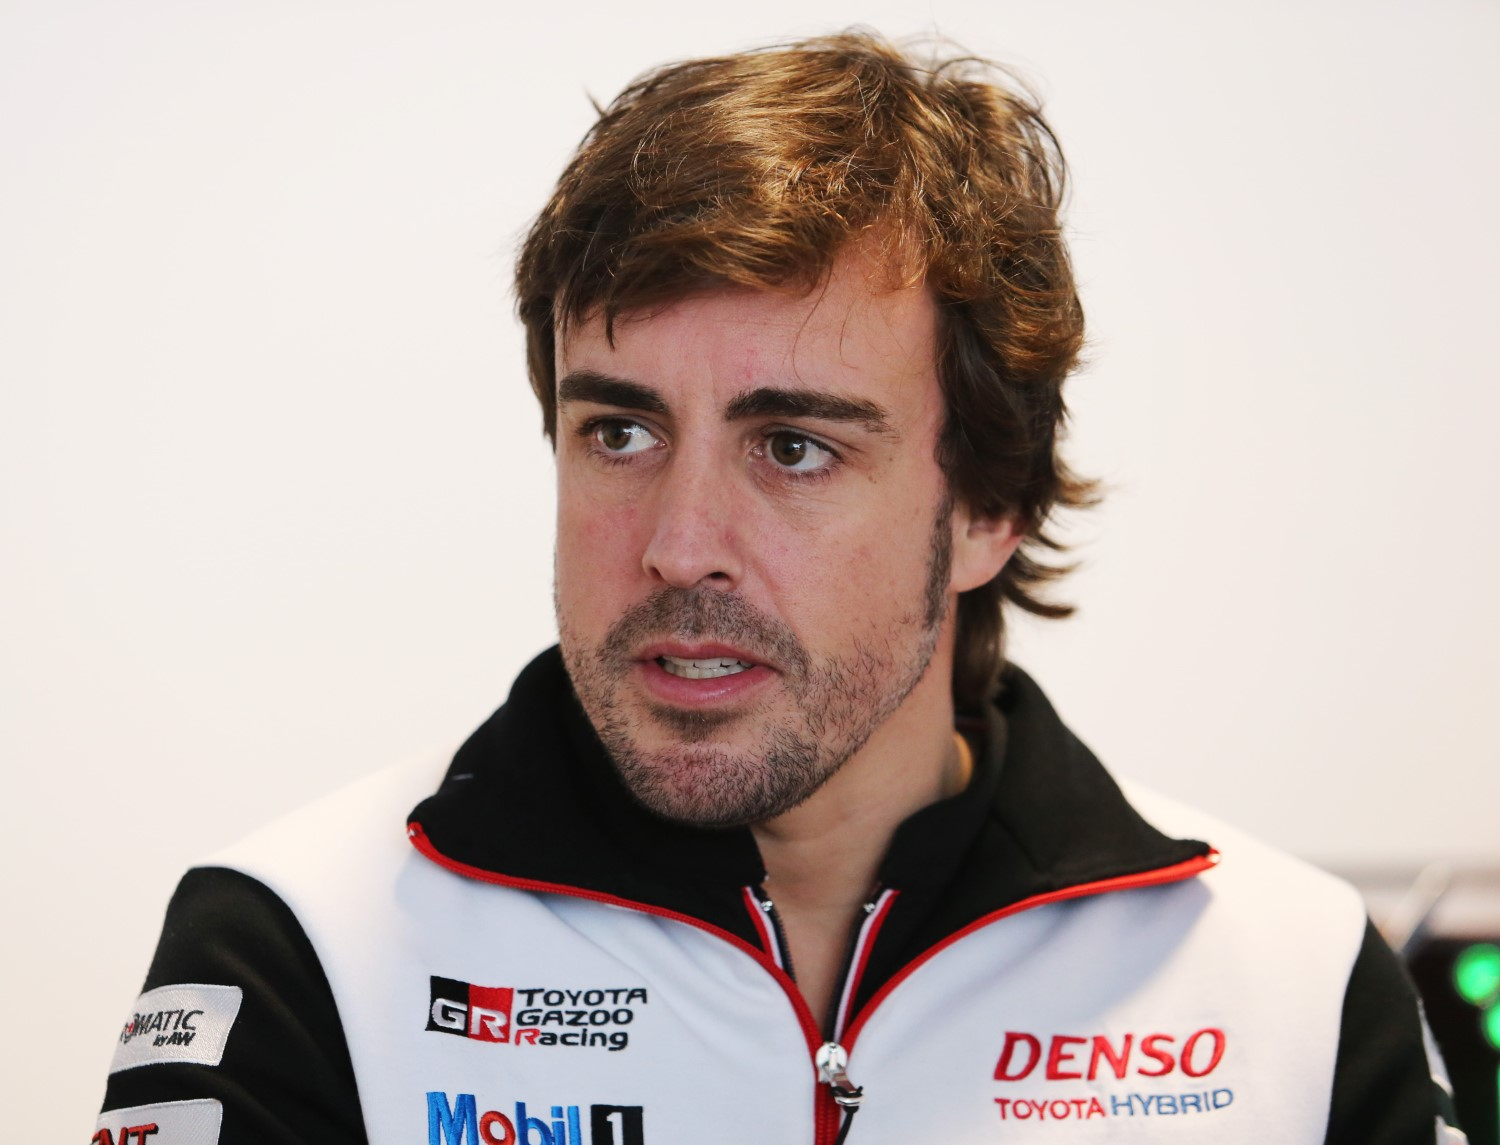 Even though Alonso is a Toyota driver in the WEC, Cadillac has no problem running him in the Rolex 24.